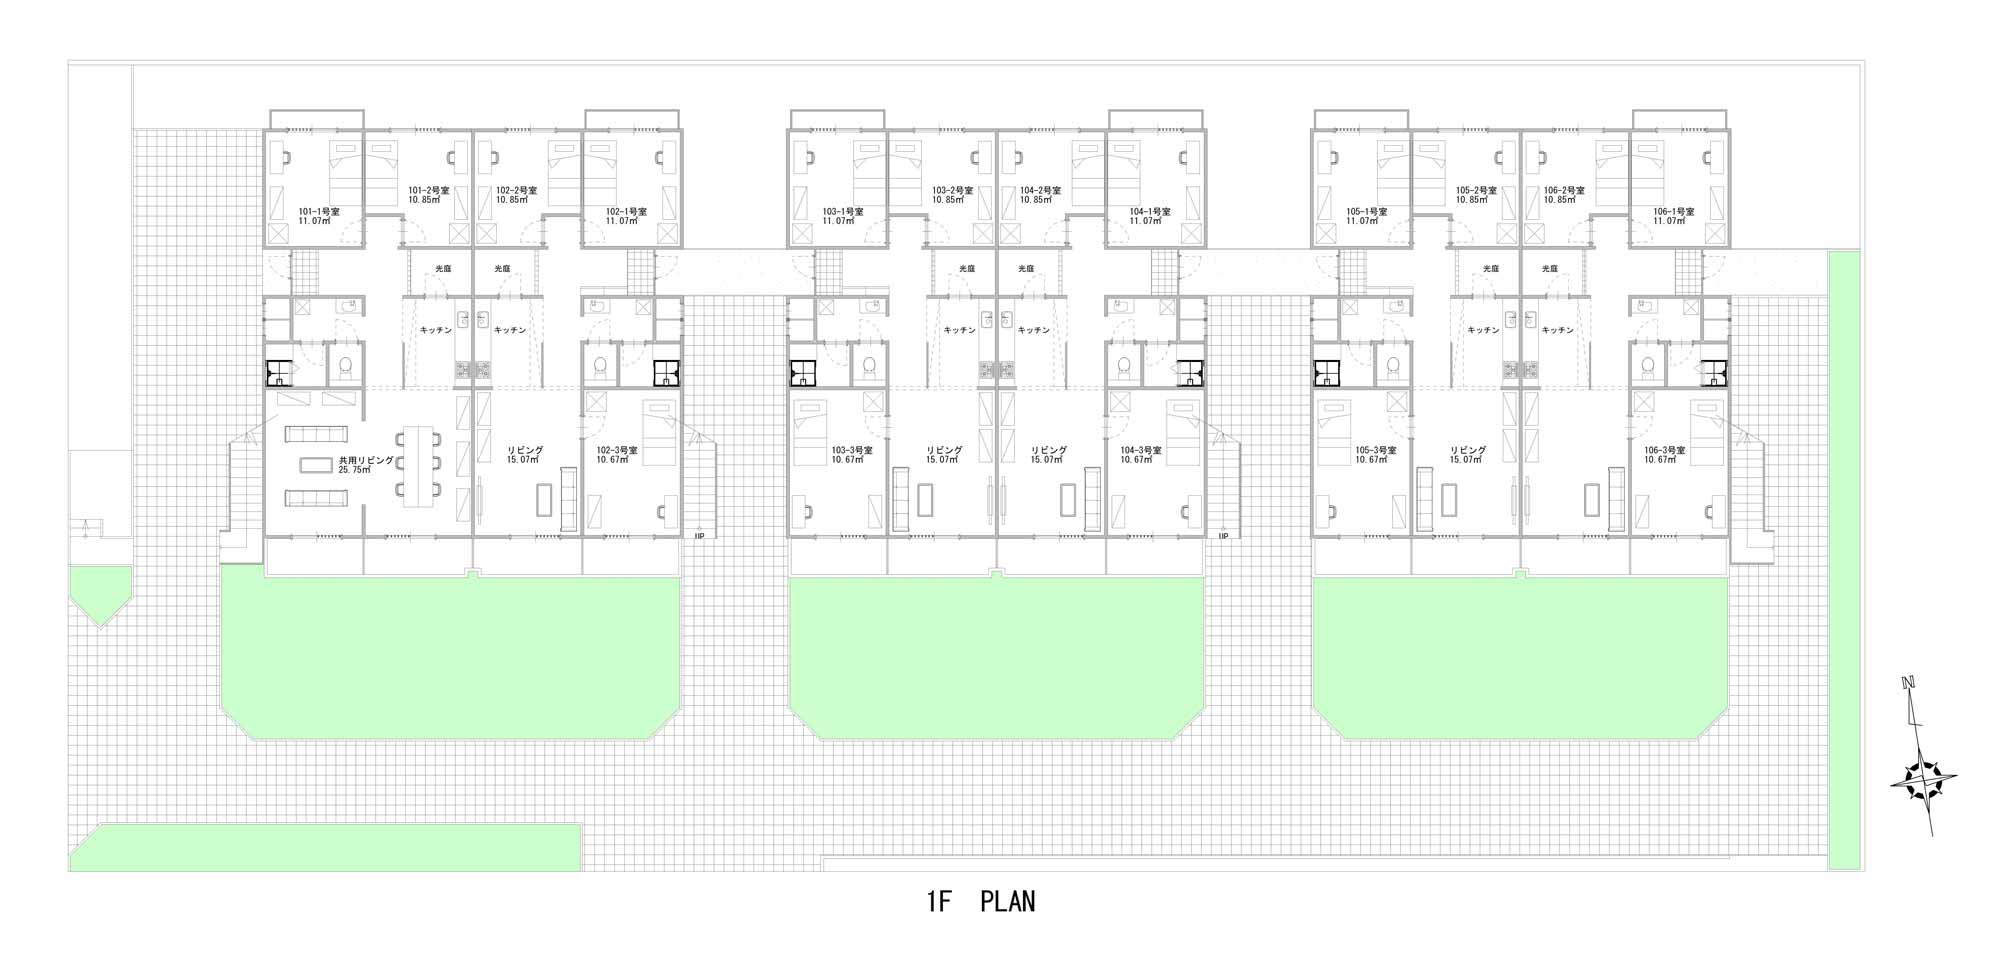 guesthouse sharehouse ガーデンテラス鴨居 floorplan1